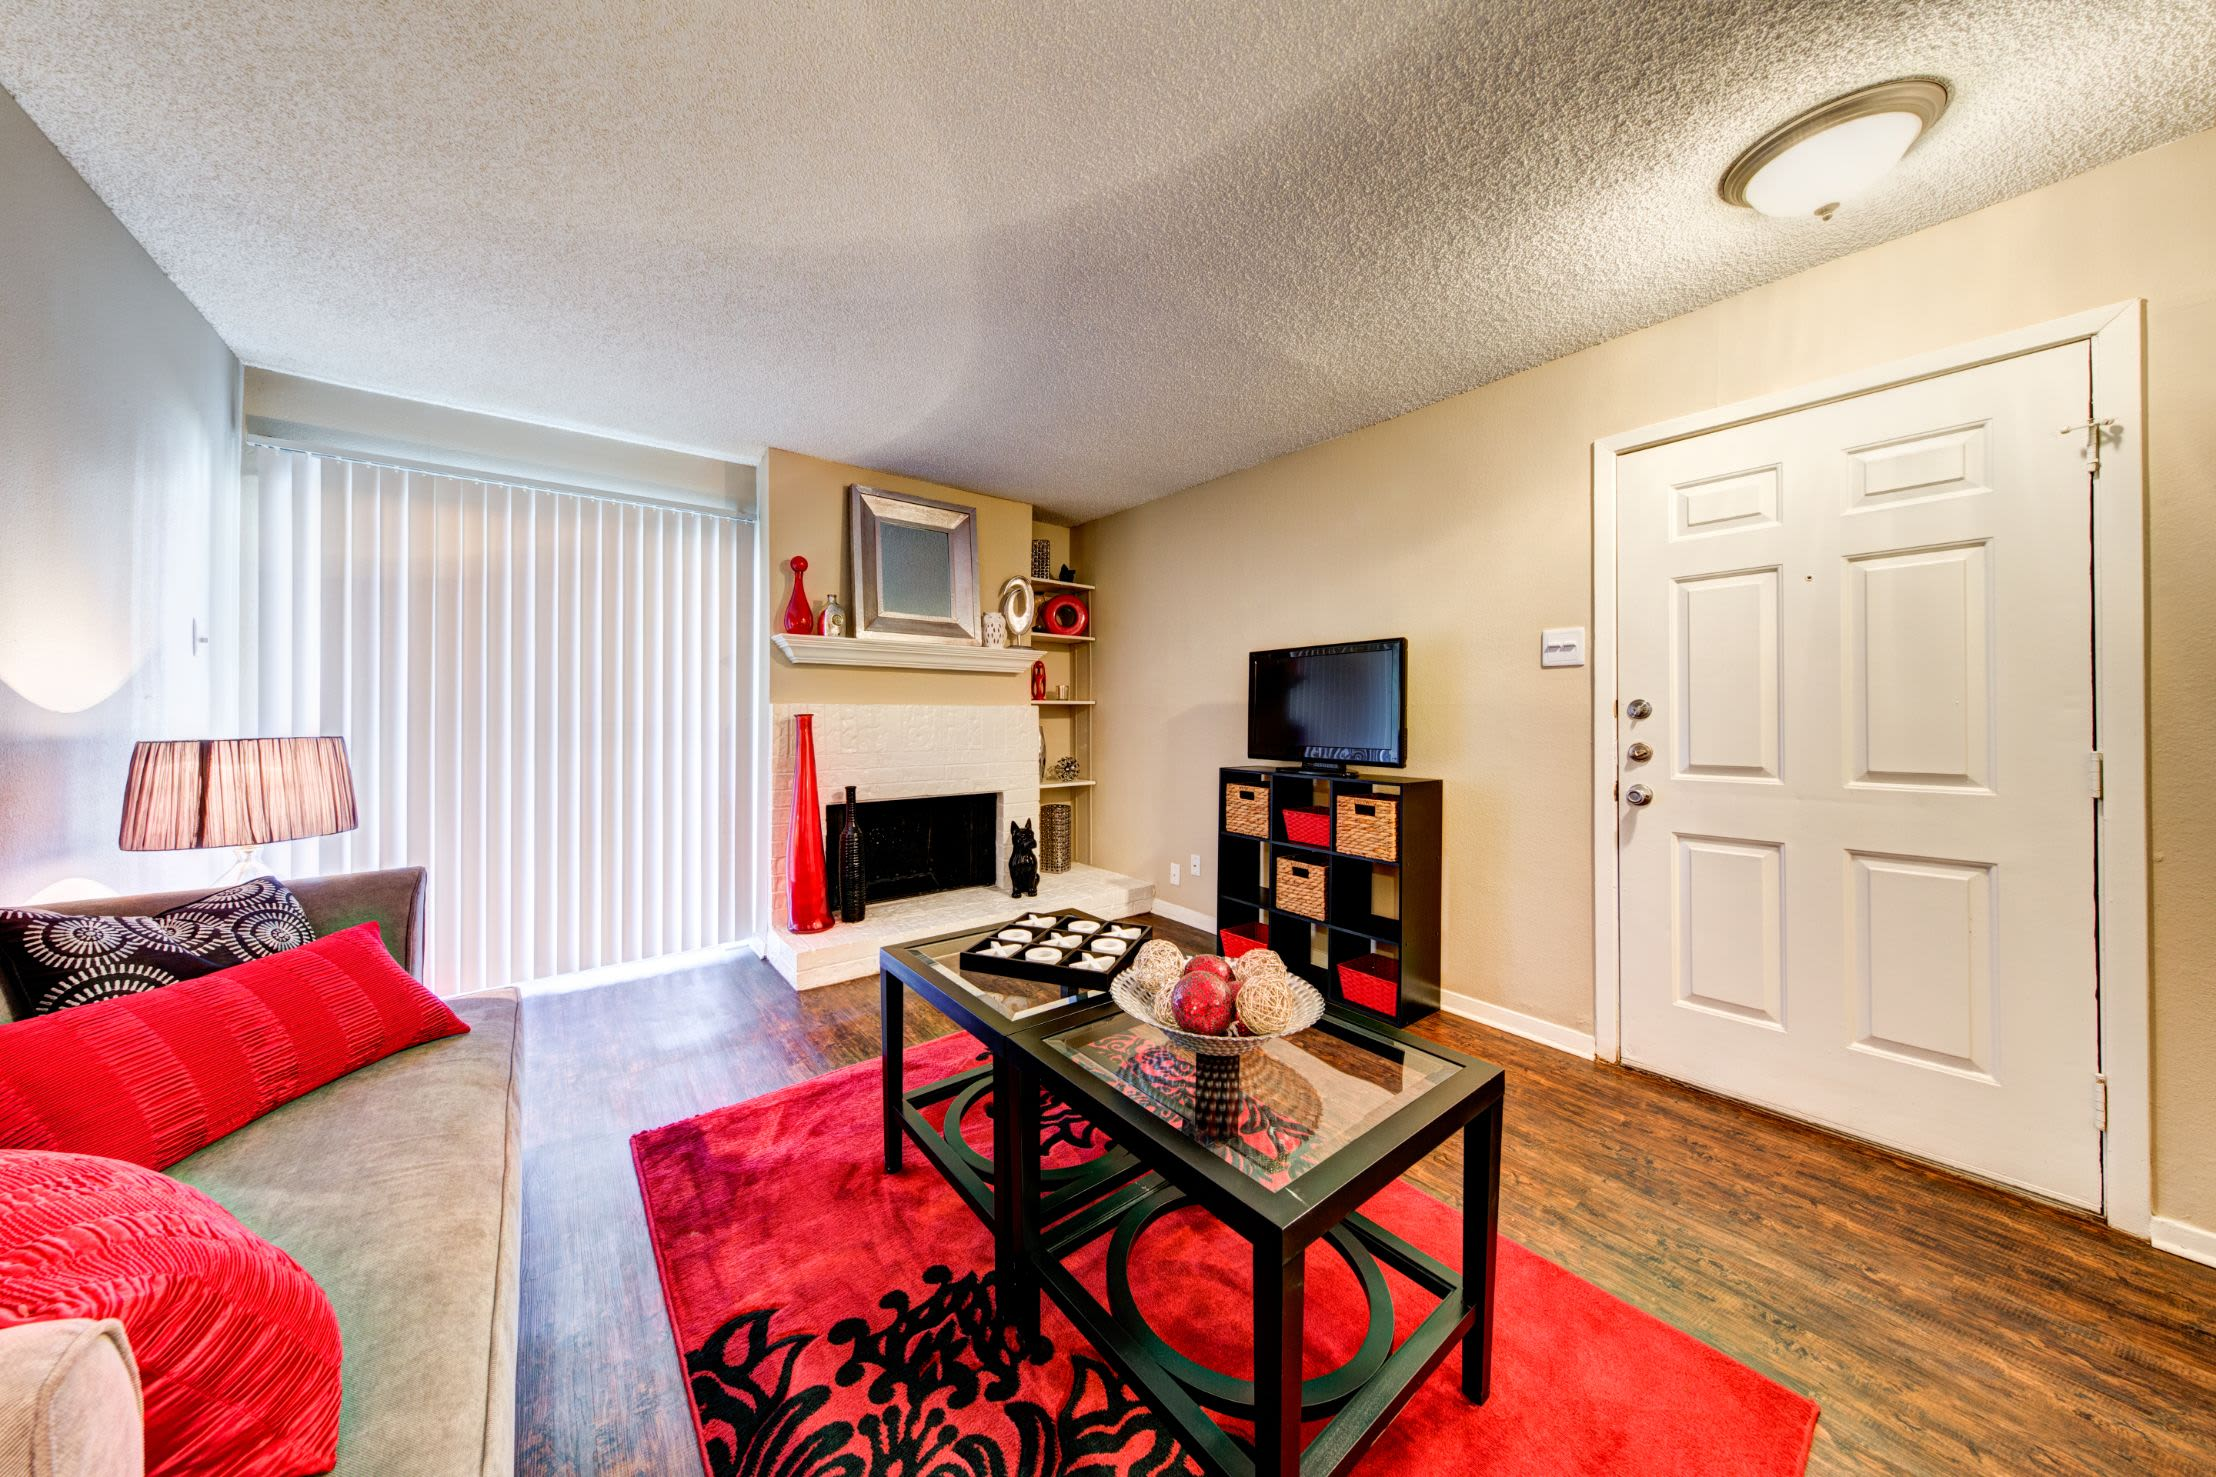 Bright living room with a fireplace at The Park at Flower Mound in Flower Mound, Texas